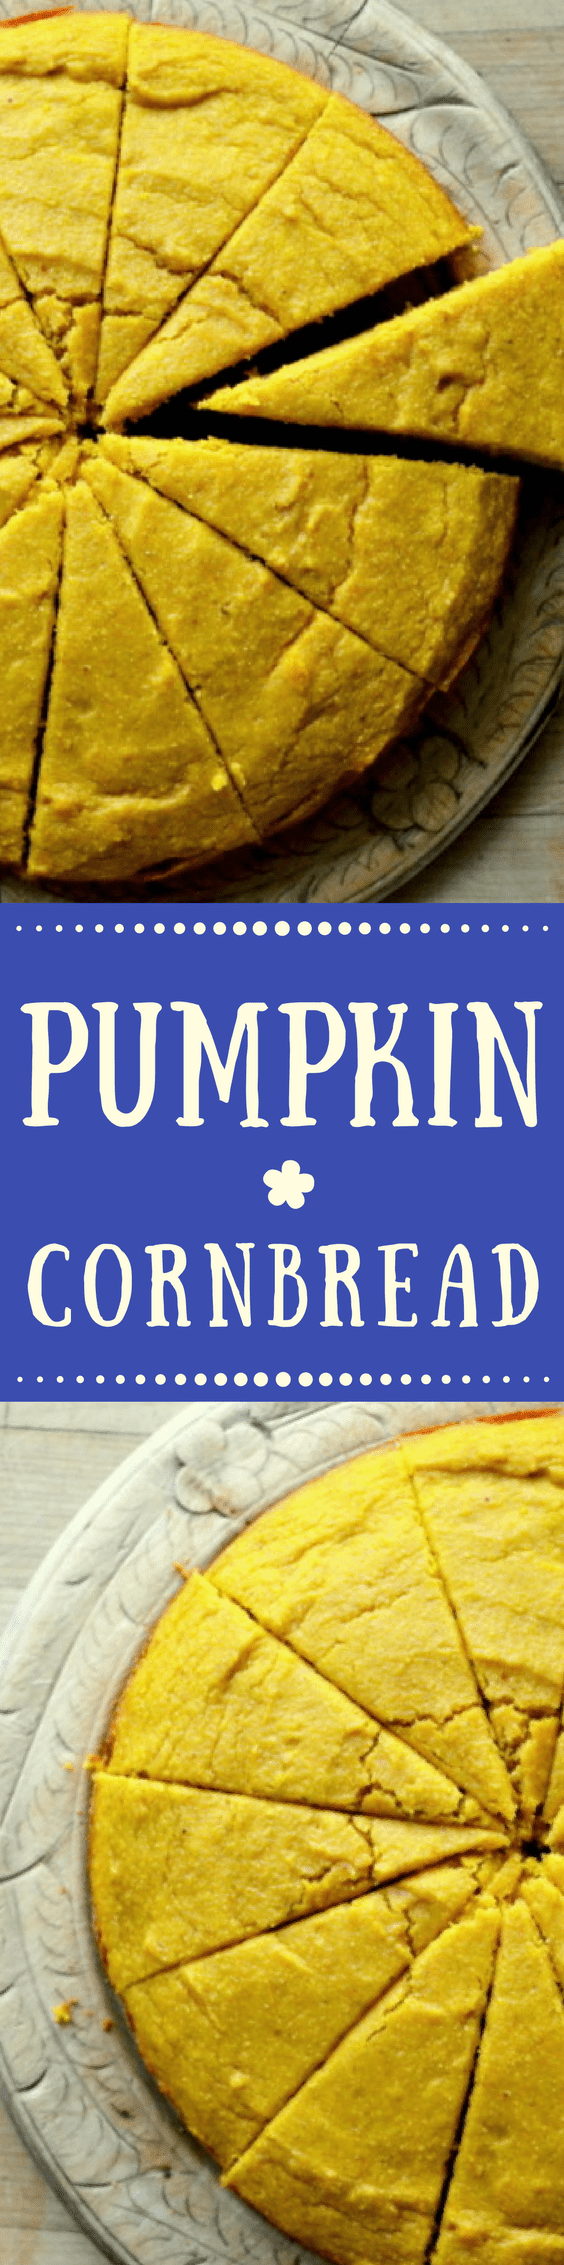 HOMEMADE PUMPKIN CORNBREAD ~ this luscious pumpkin and spice quick bread is the first thing I make every fall, it's the perfect side dish to soups, stews, and chilis! #pumpkin #fall #cornbread #Thanksgivingside #Christmasside #pumpkinbread #quickbread